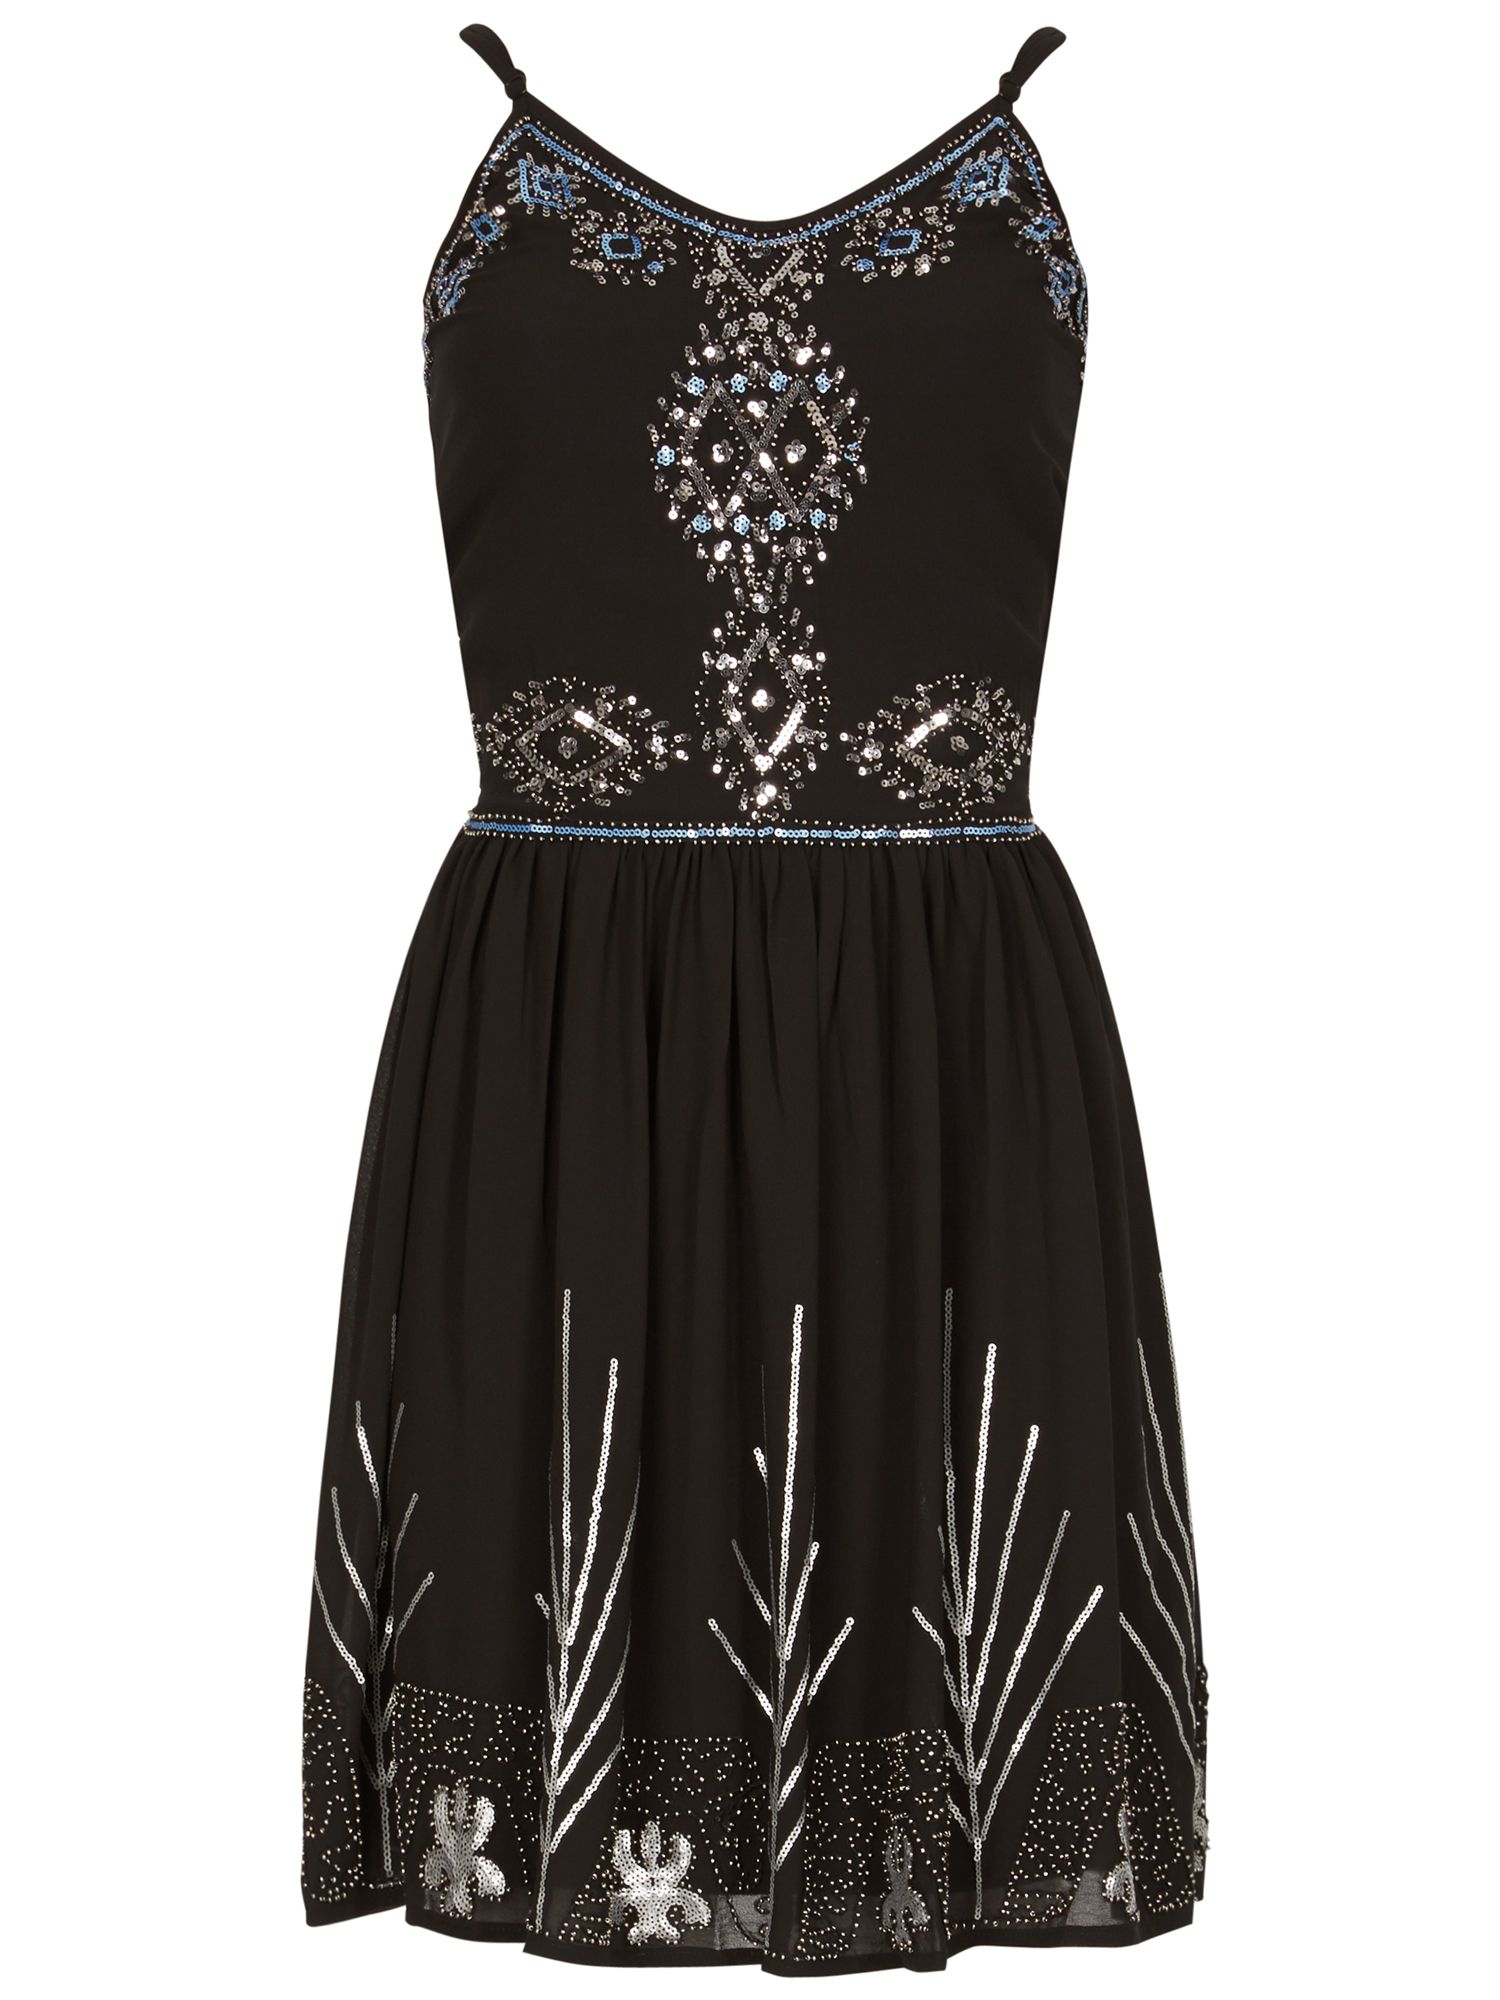 Izabel London Sequin Embellished Dress, Black